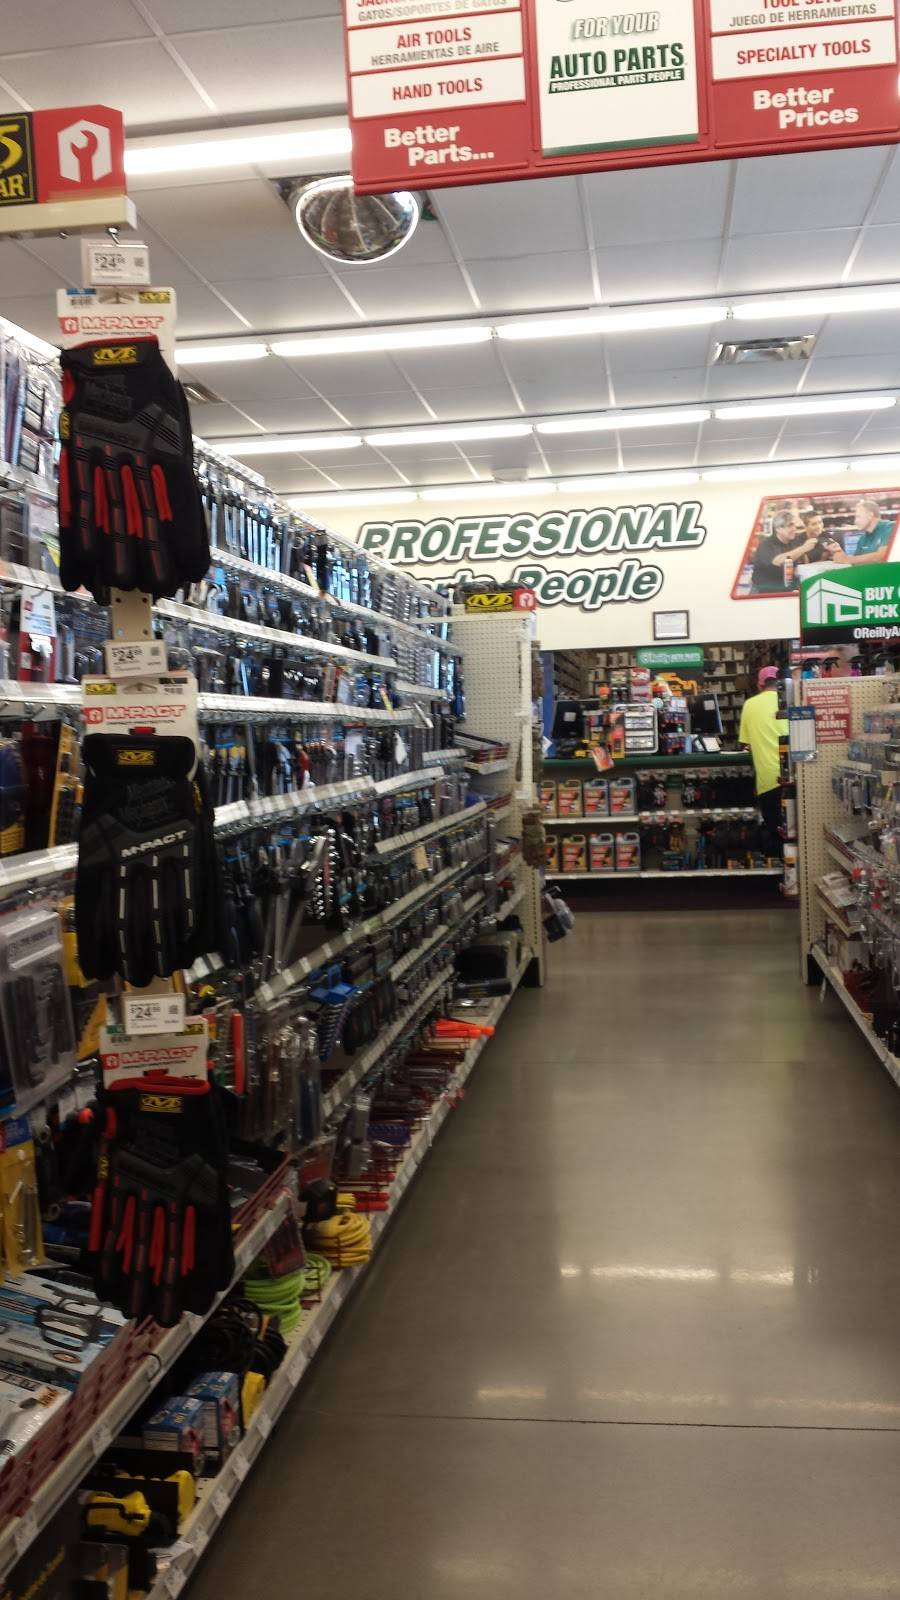 OReilly Auto Parts - electronics store  | Photo 6 of 9 | Address: 13318 E 116th St N, Owasso, OK 74055, USA | Phone: (918) 371-3745